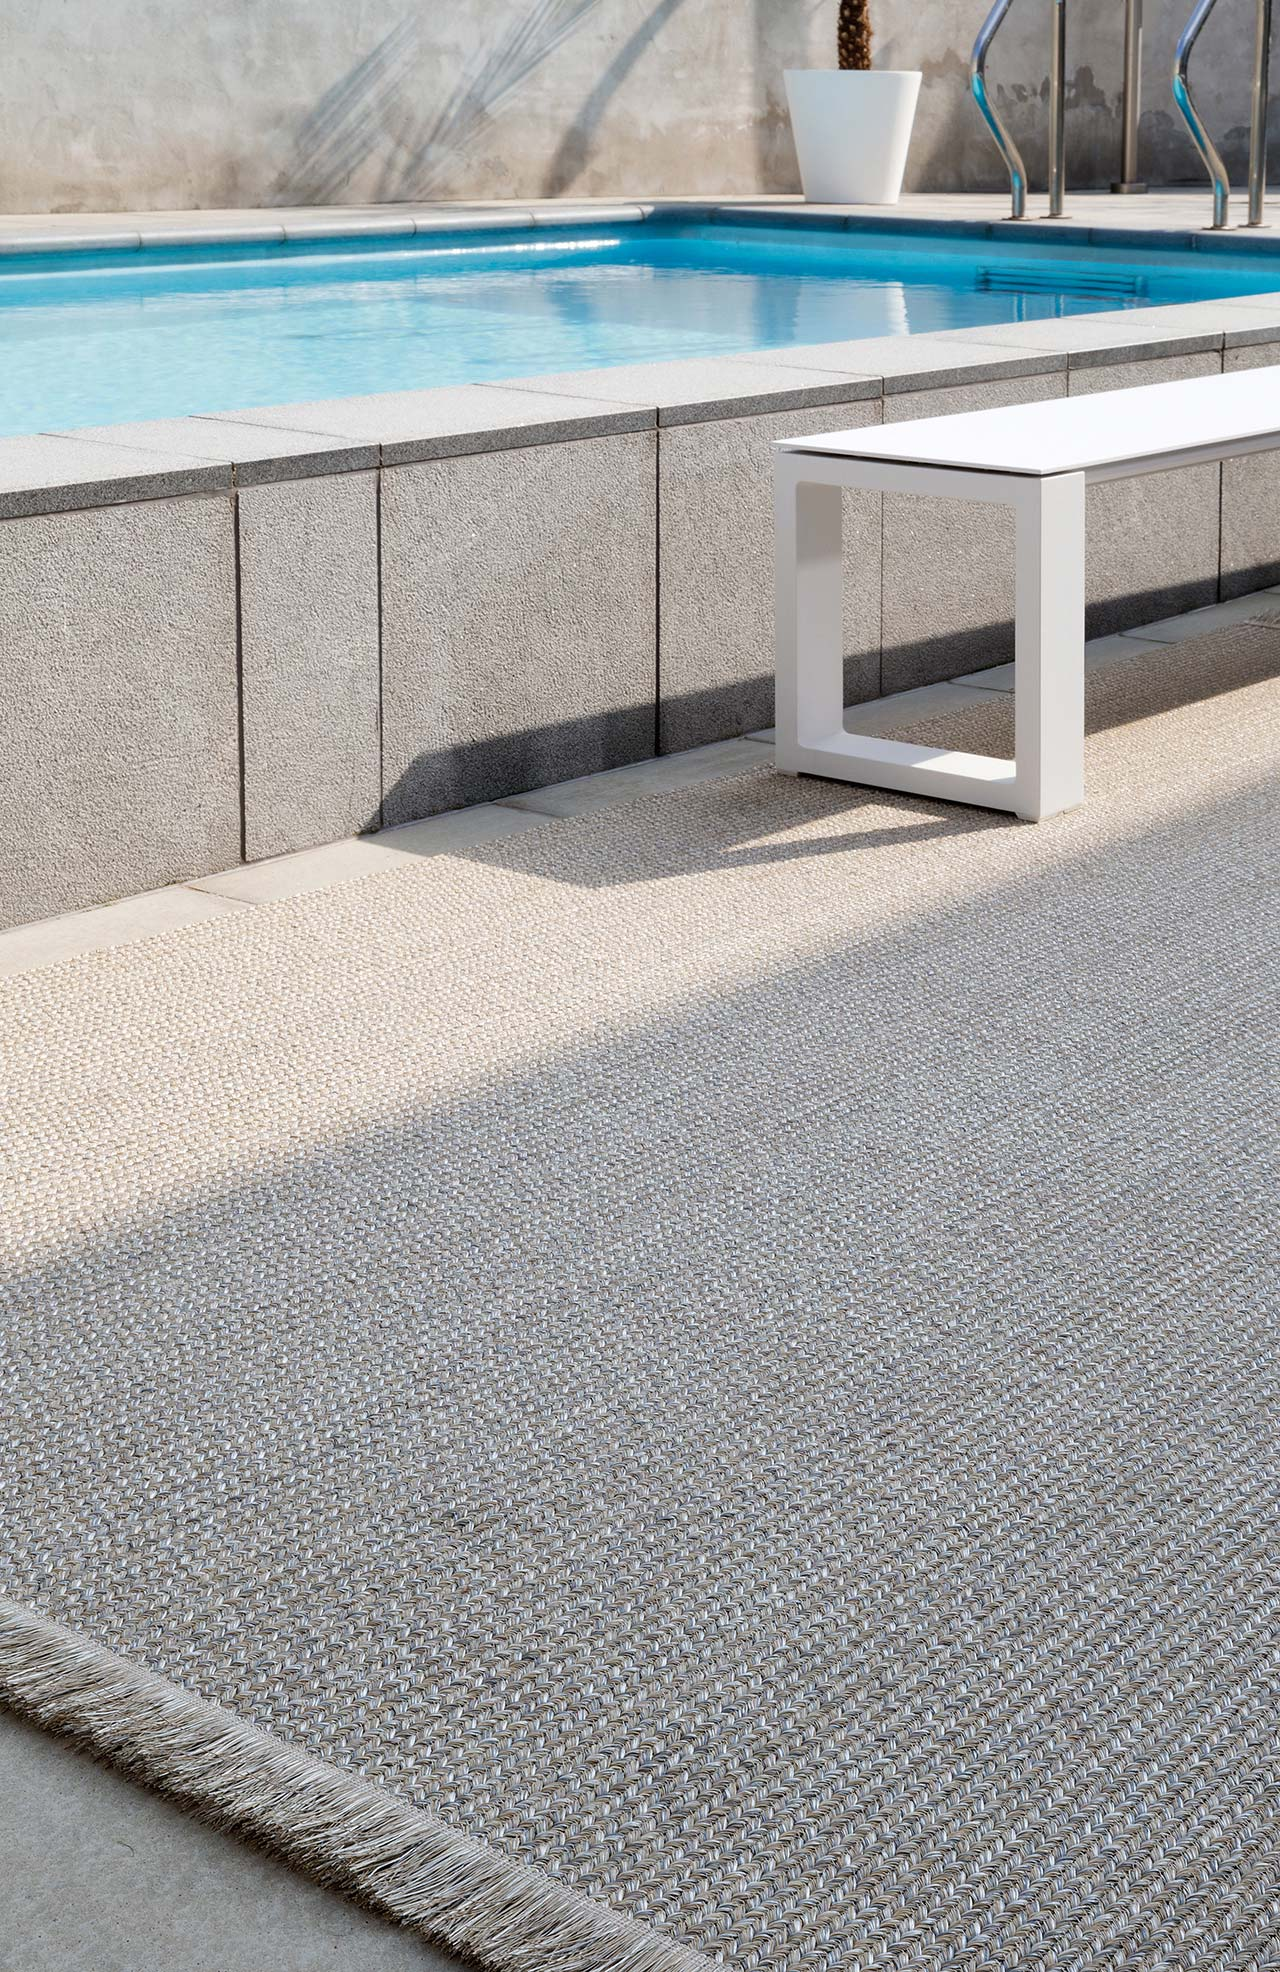 poolside_pl12462_stony-ground_sfeerbeeld_limited-edition_carpets.jpg